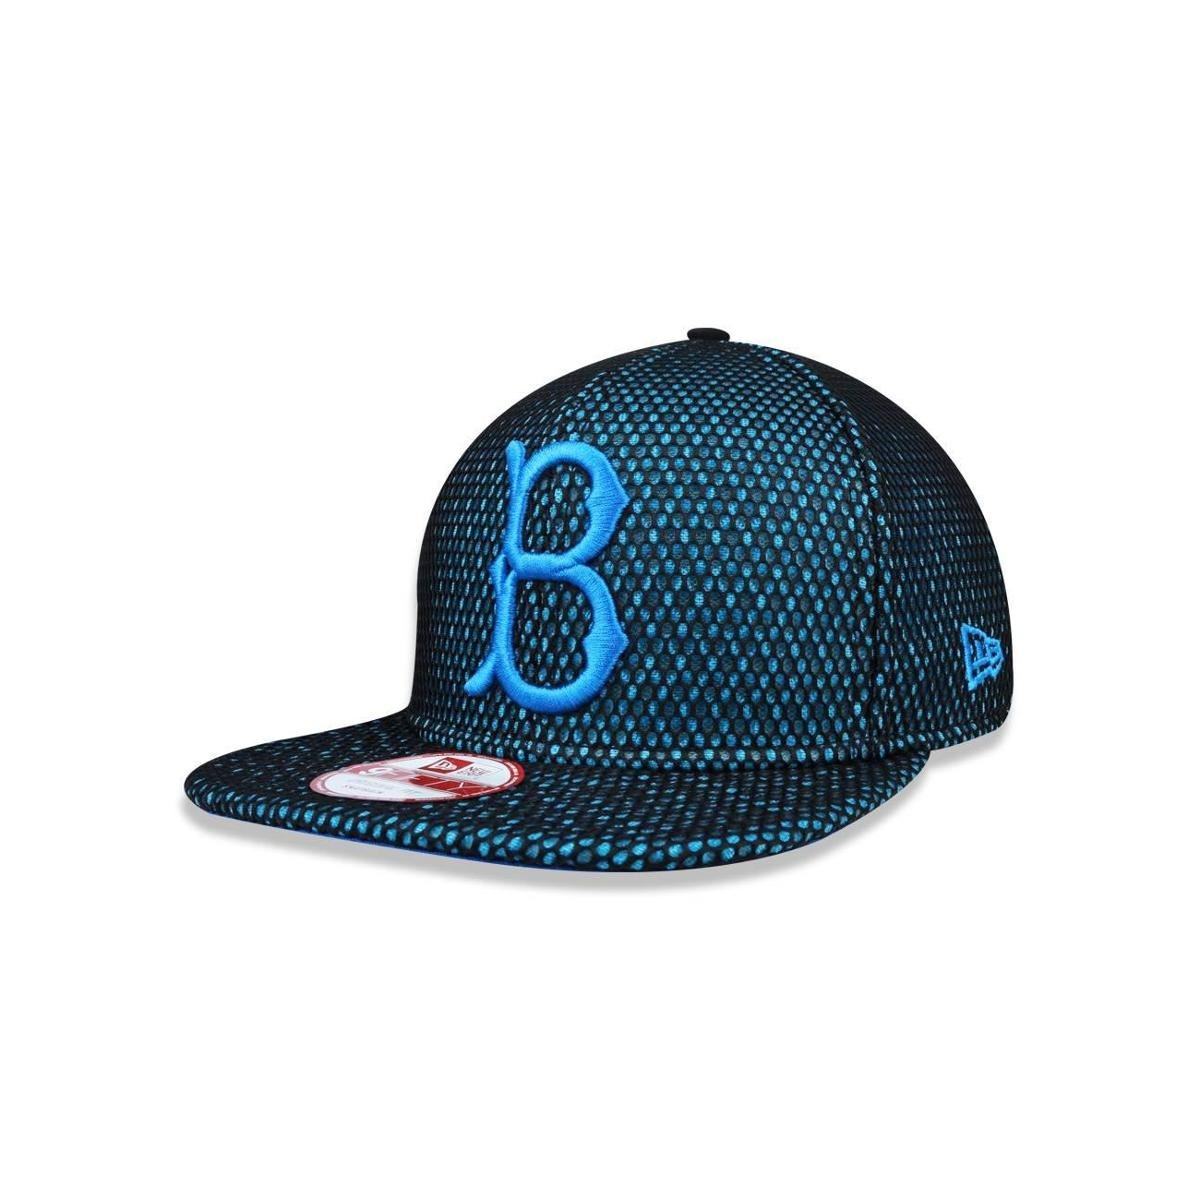 f02bda685 Boné 950 Original Fit Brooklyn Dodgers MLB Aba Reta Snapback New Era -  Compre Agora